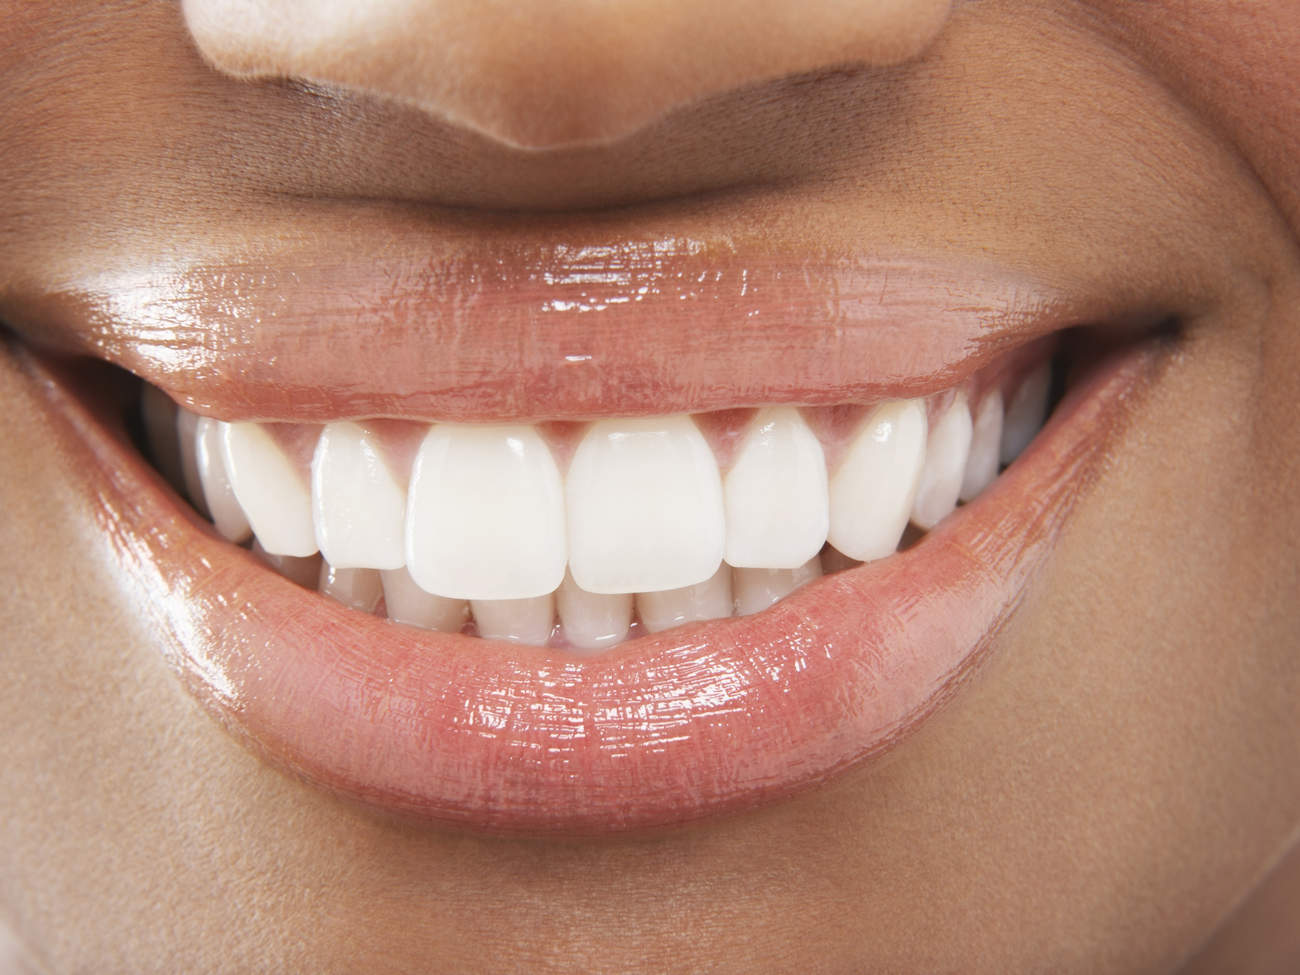 teeth-smiling-GettyImages-77746397